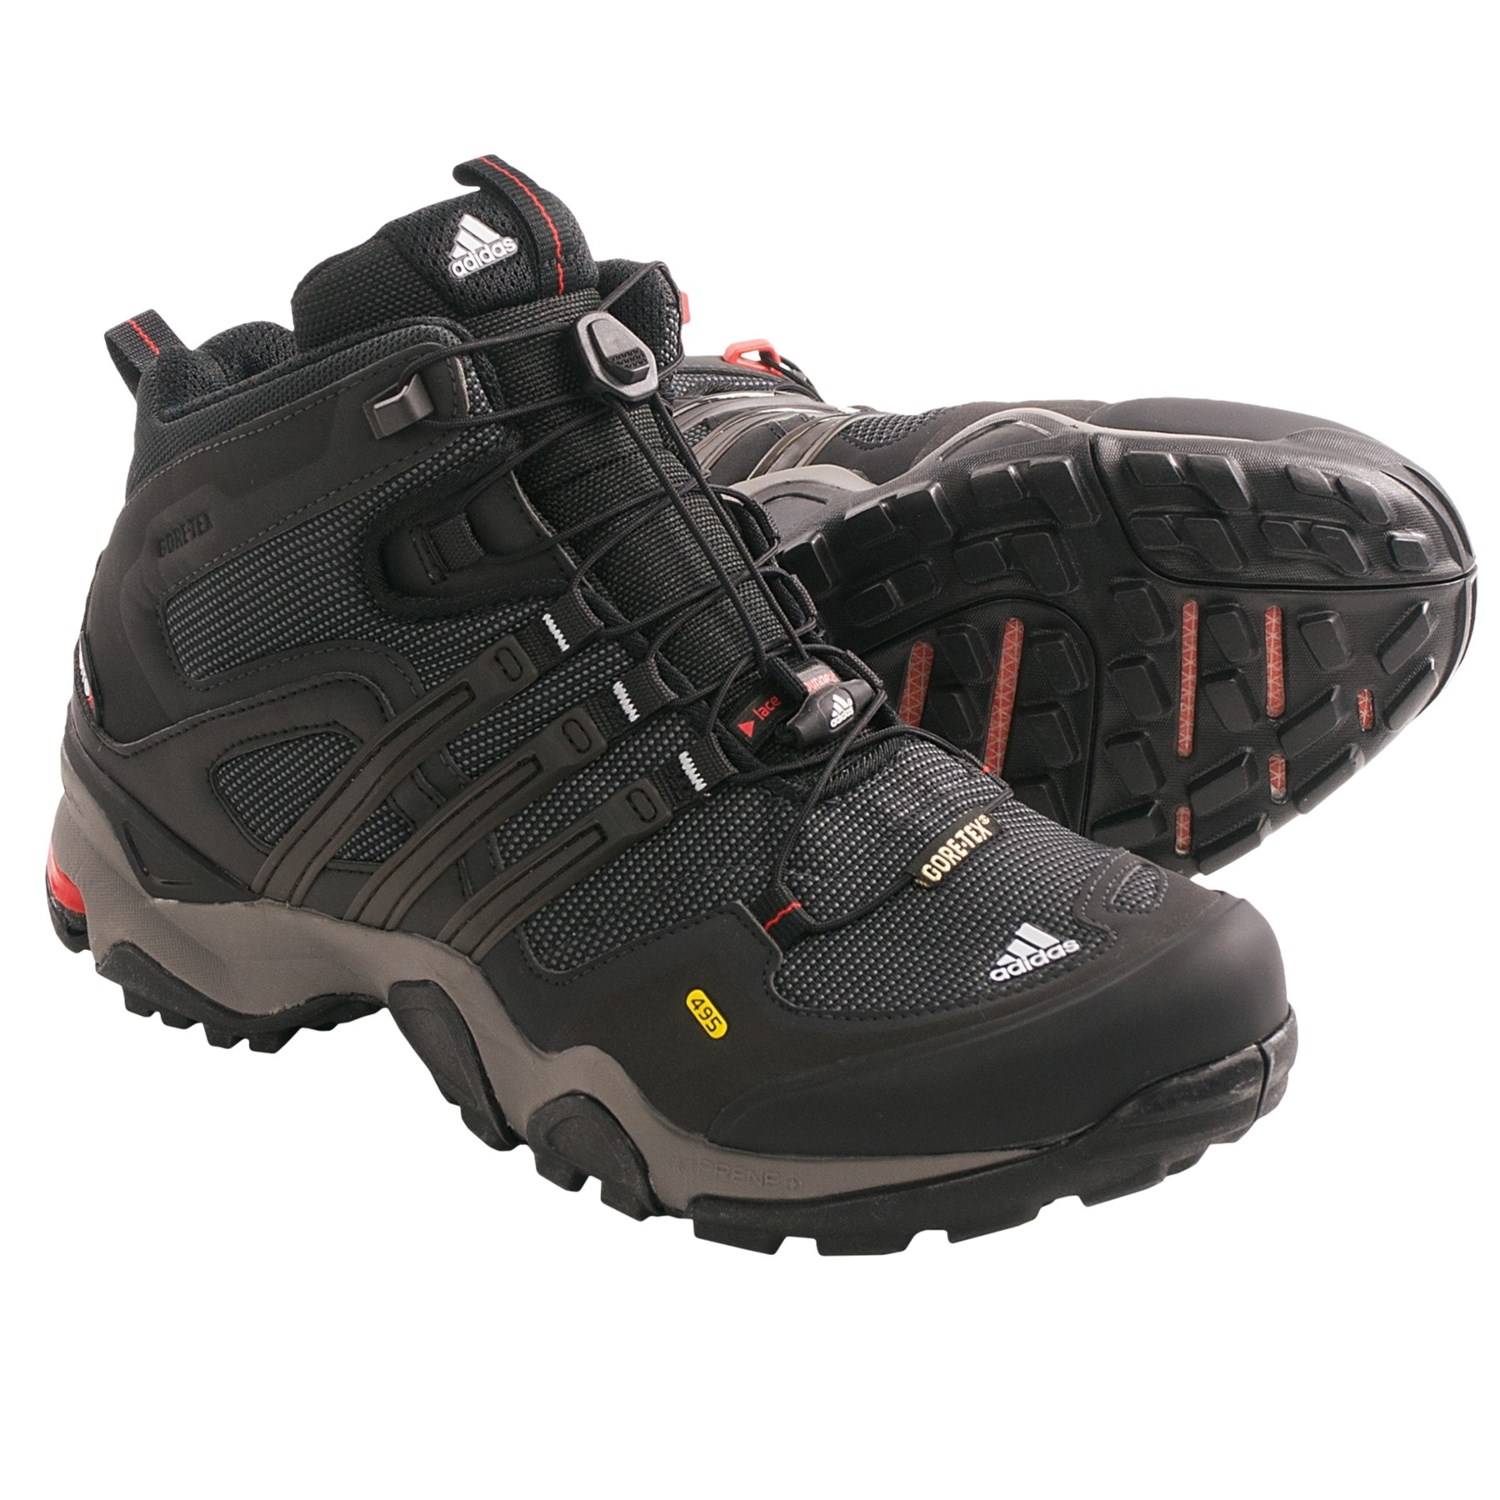 edc8ce8b670746 Adidas Outdoor Terrex Fast X FM Mid Gore Tex® Hiking Boots (For Men) 4623W  69